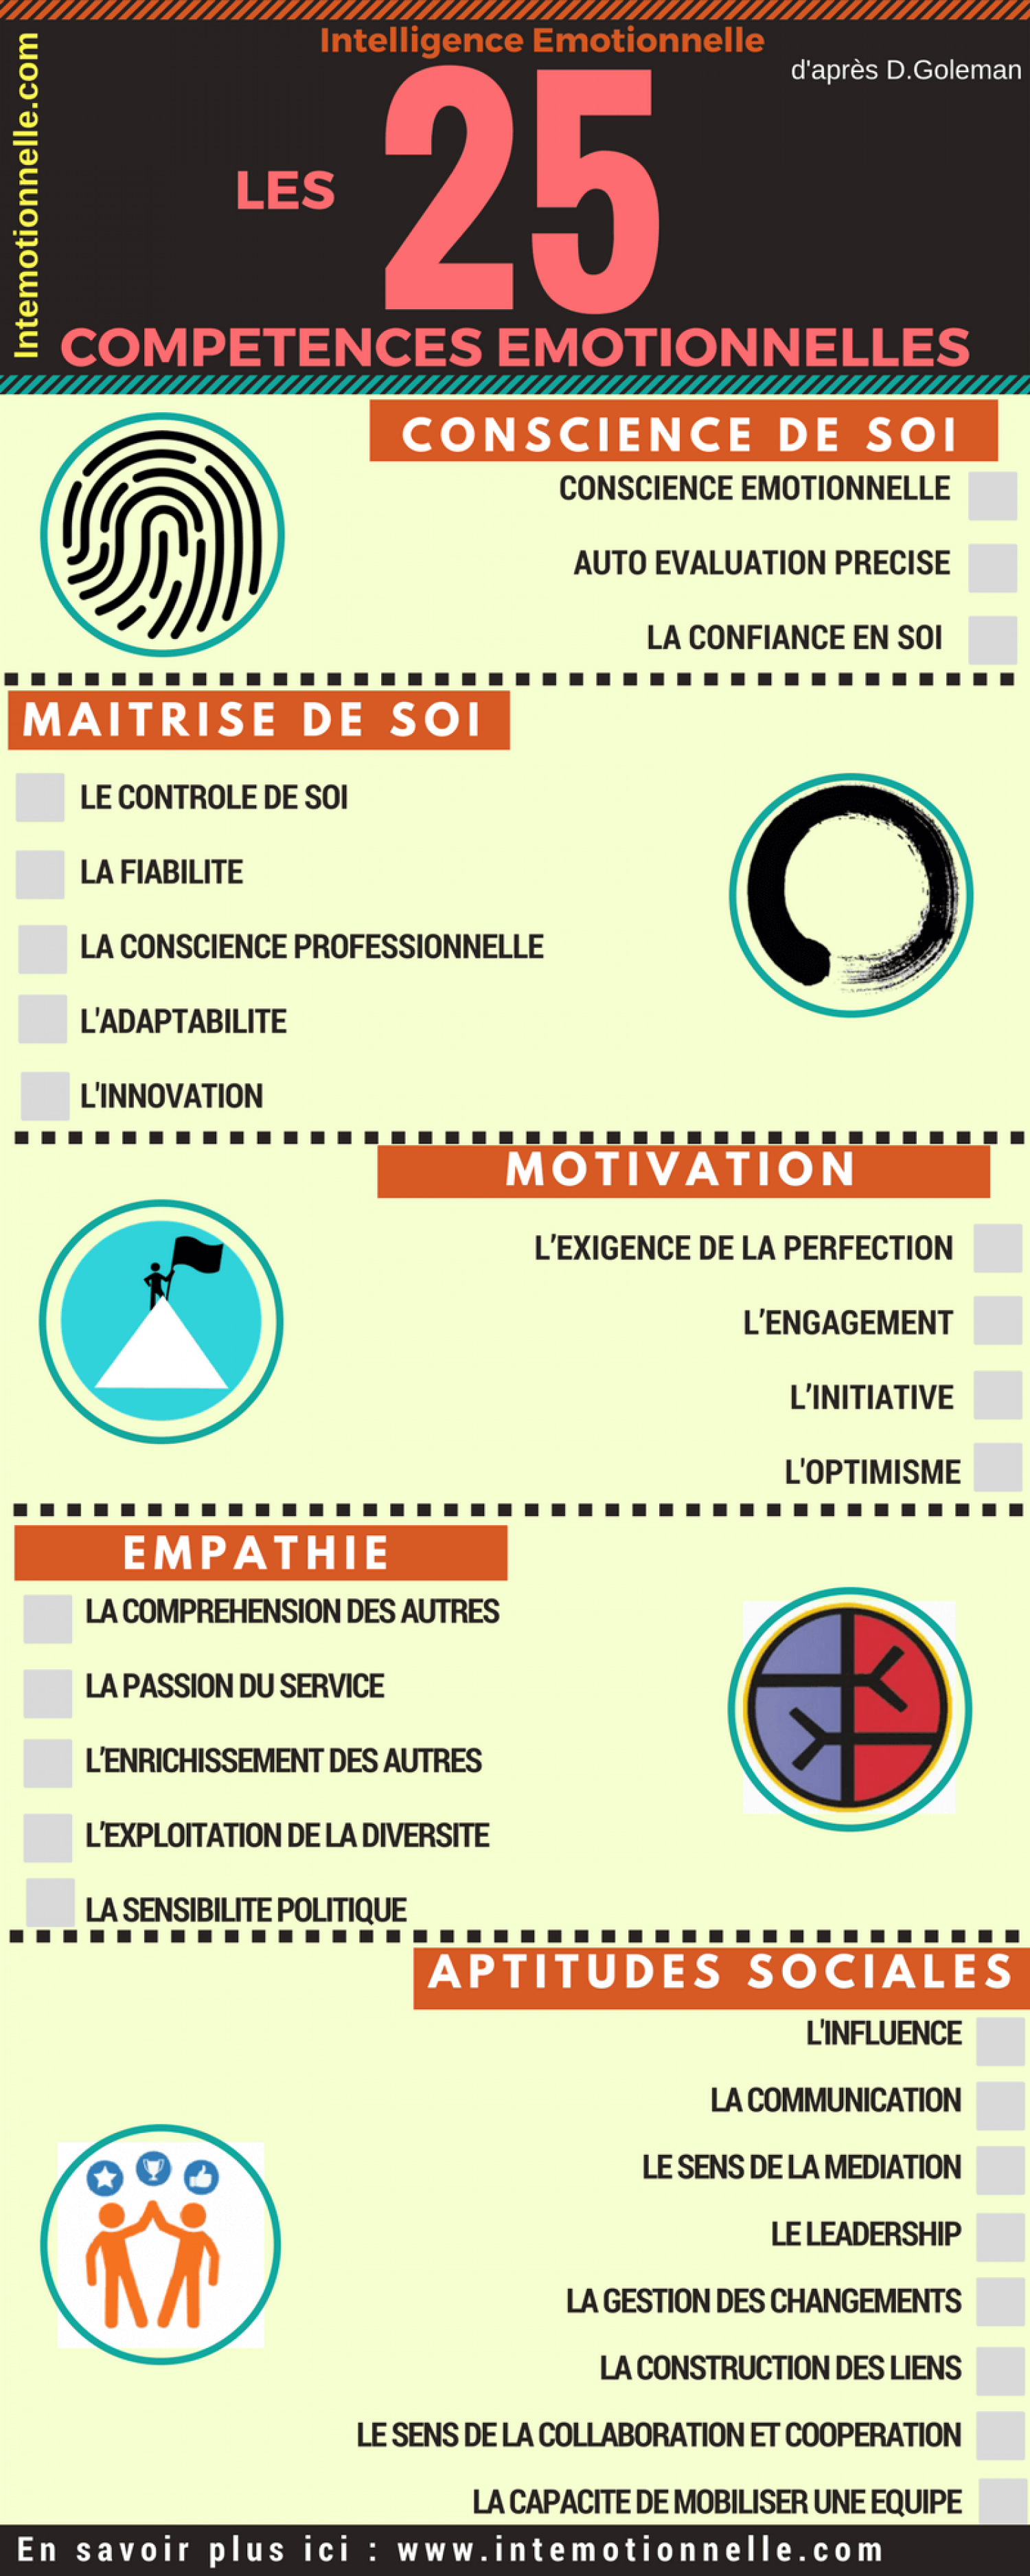 Les 25 Competences de l'Intelligence Emotionnelle by Intemotionnelle Infographic